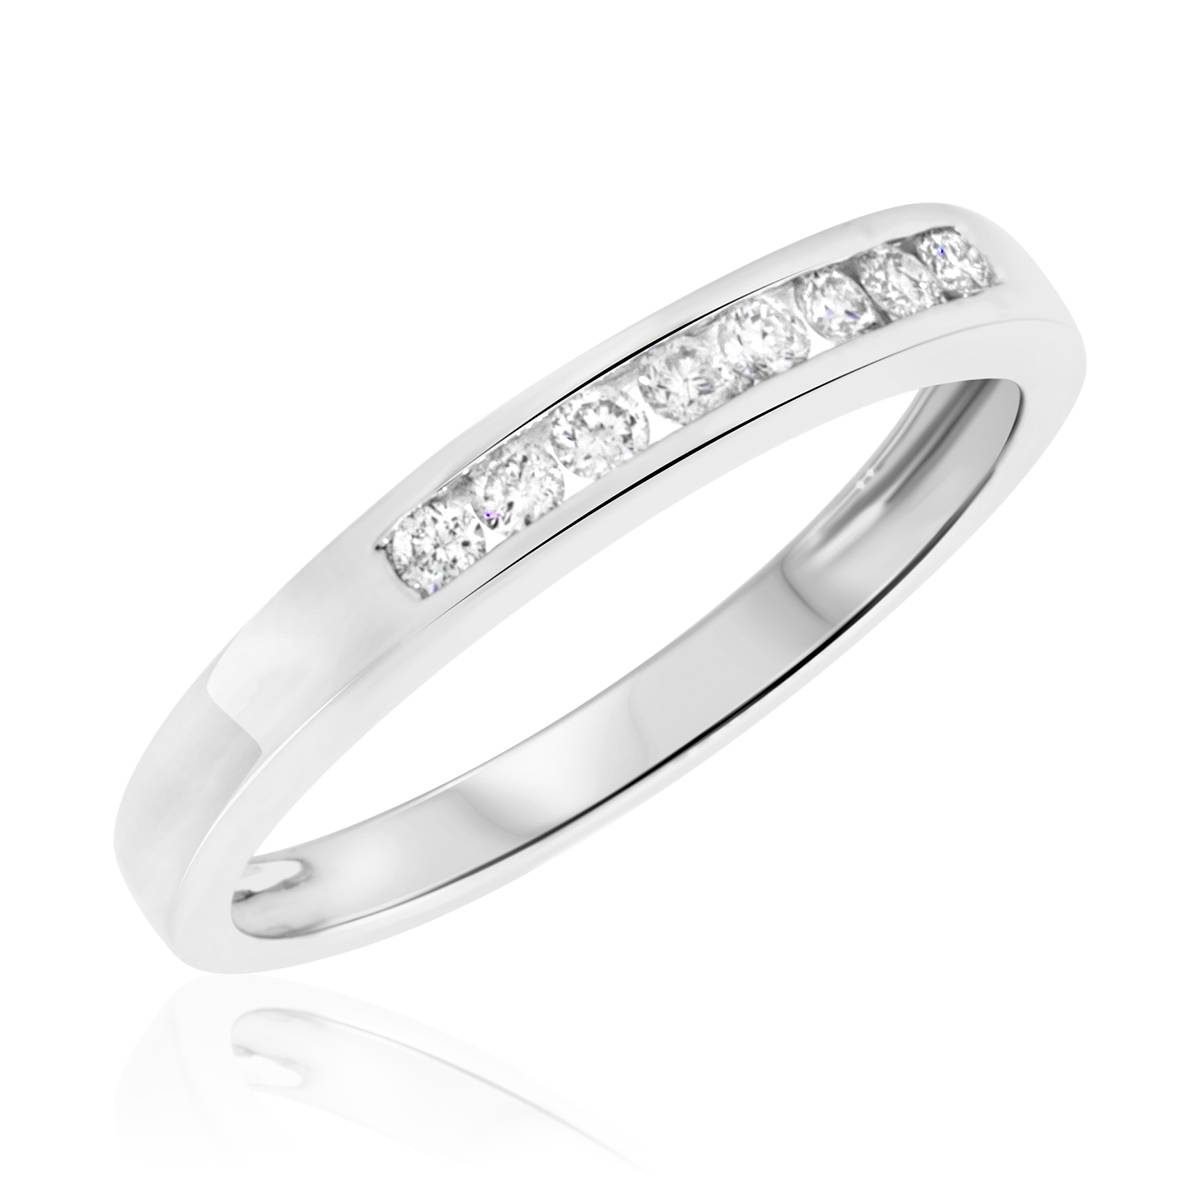 2018 Popular Women White Gold Wedding Bands